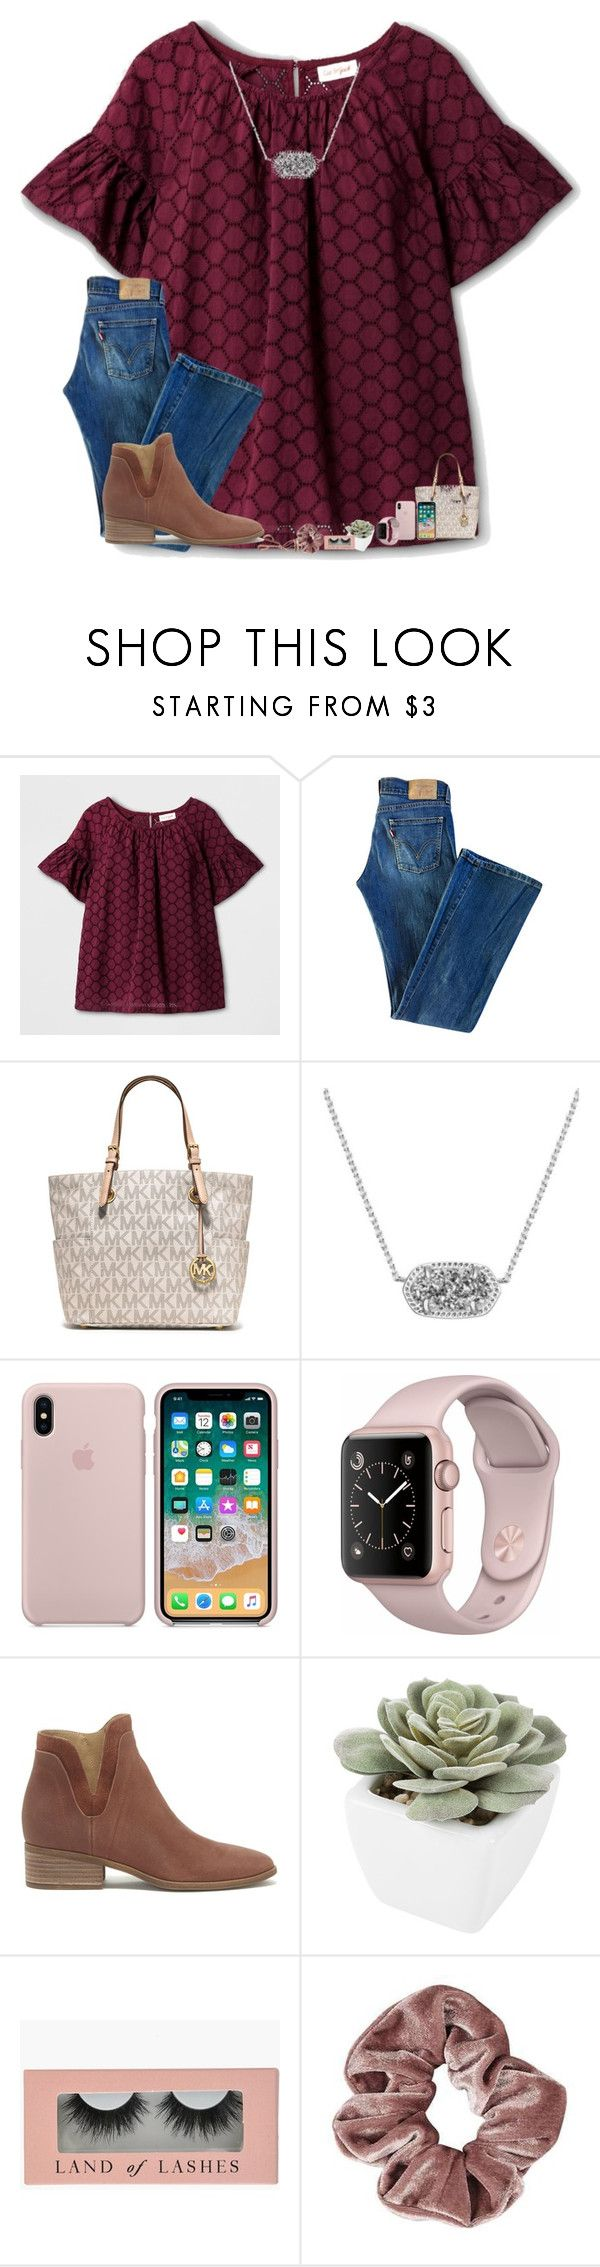 """•i miss you•"" by mackenzielacy814 on Polyvore featuring Levi's, MICHAEL Michael Kors, Kendra Scott, Lucky Brand, Abigail Ahern, Tweezerman and mrlloves"